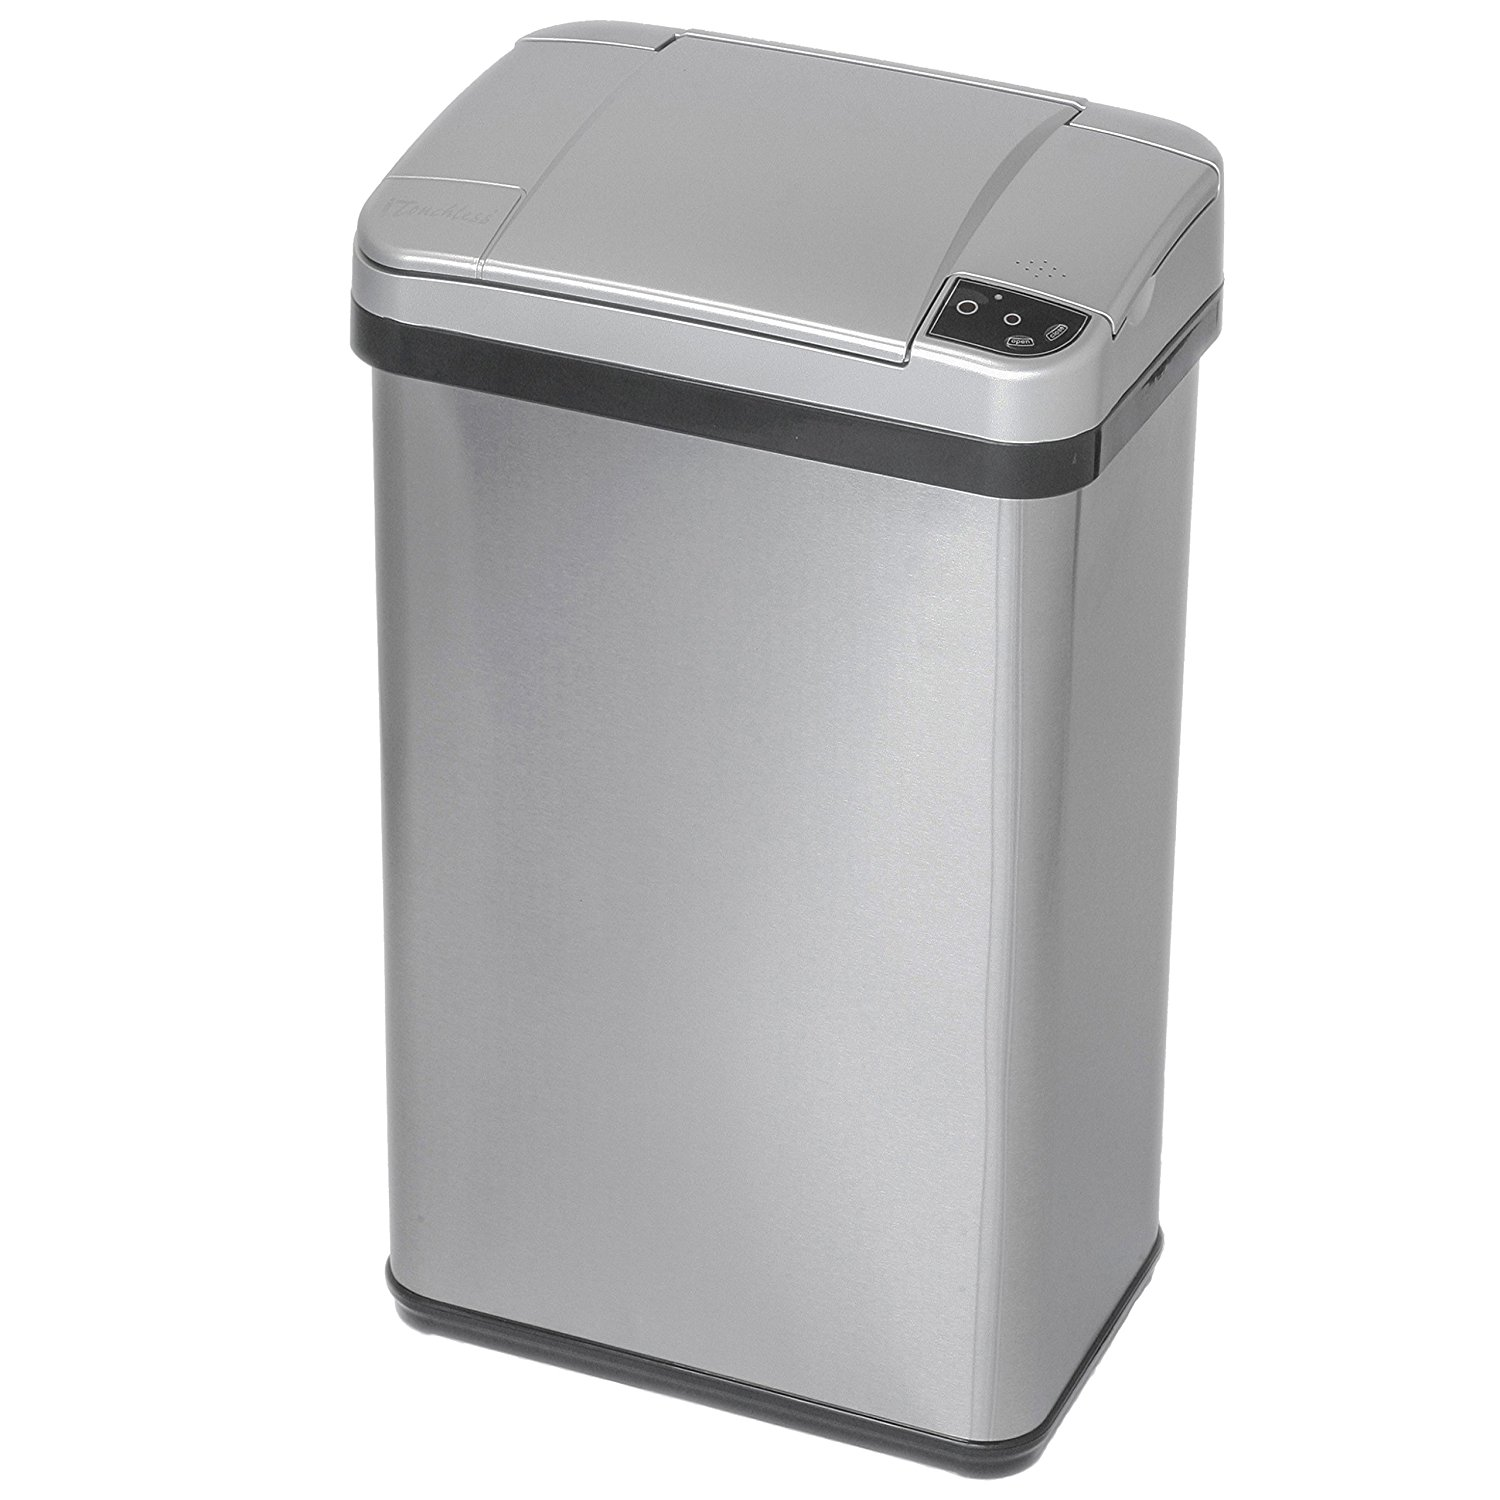 1500x1500 Itouchless Stainless Steel Trash Can, Touchless Sensor